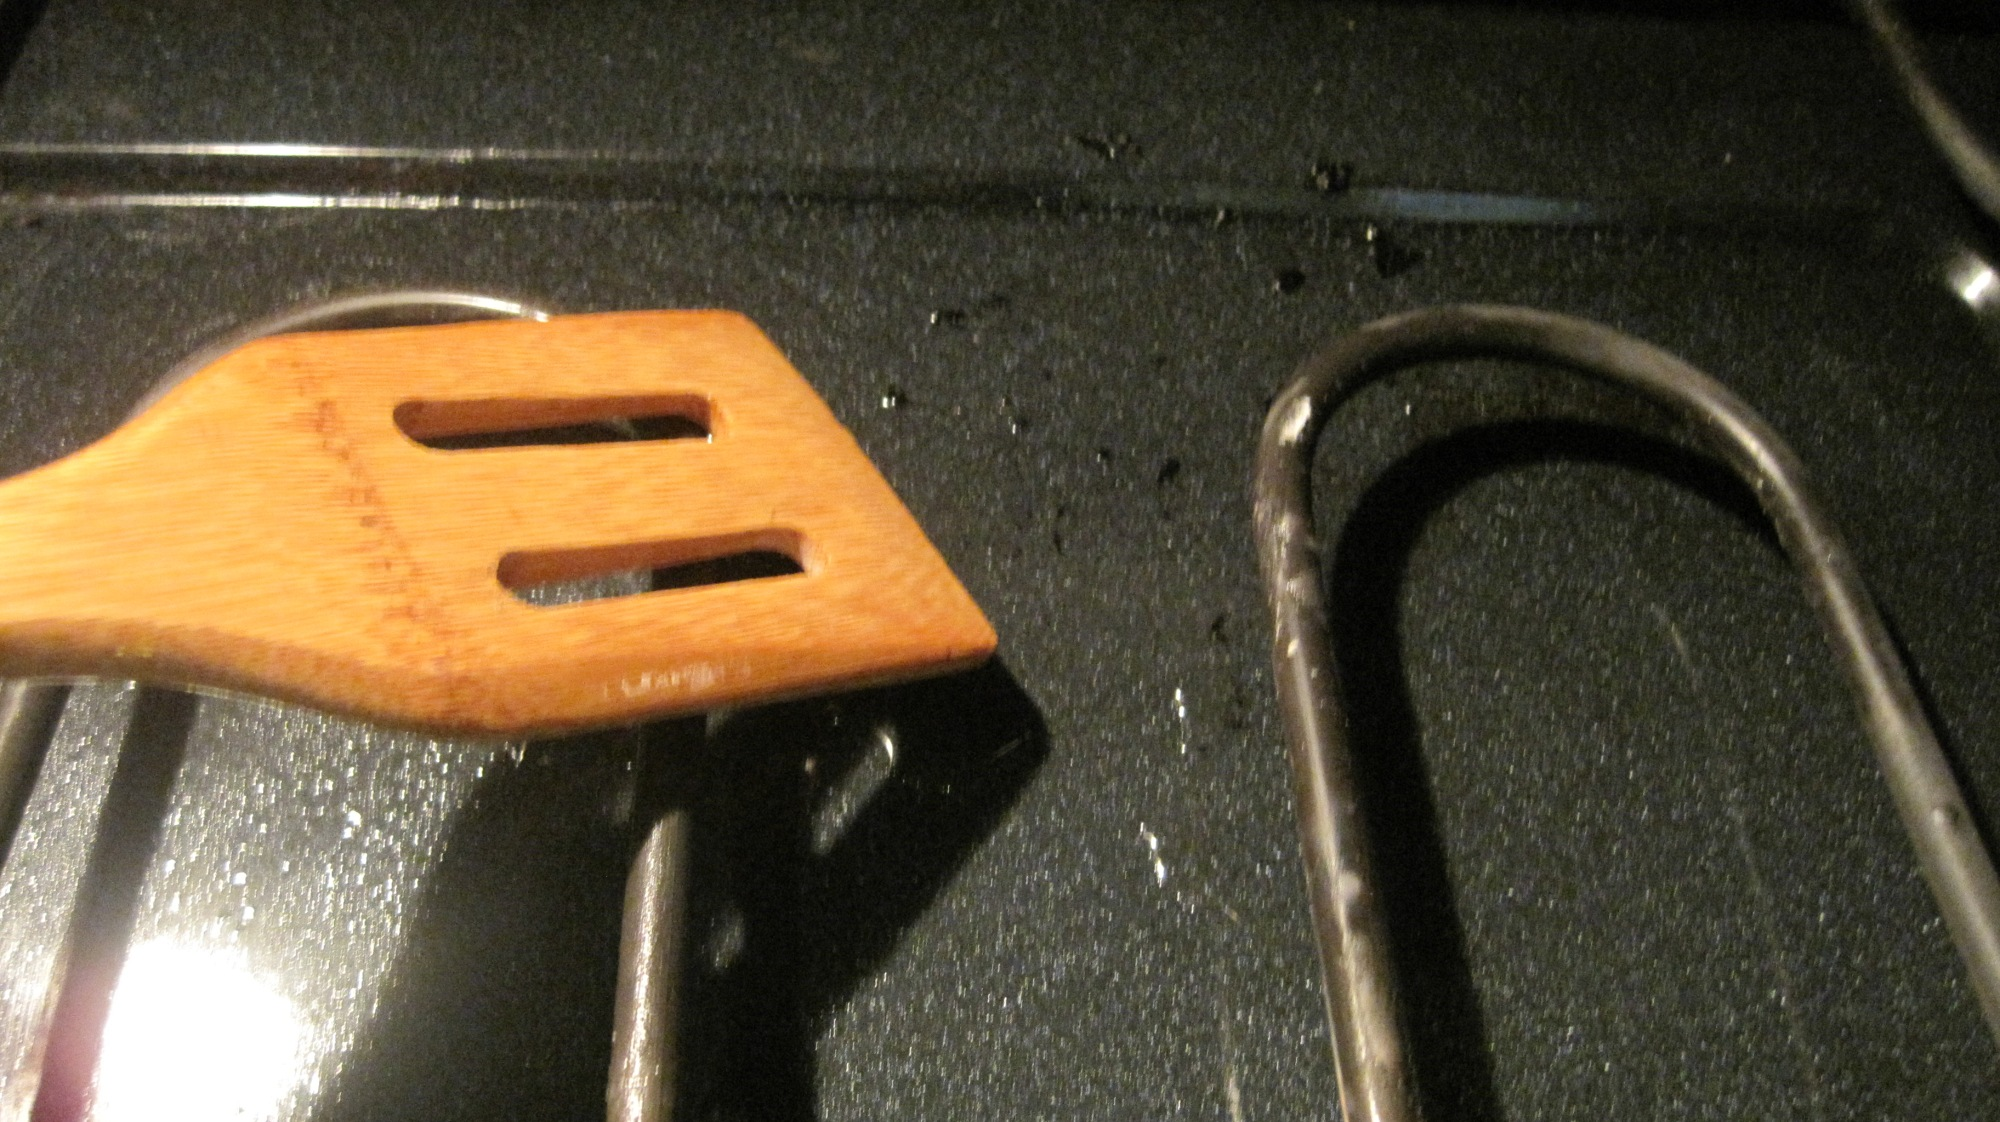 One little stubborn burnt-on part was no match for my wooden spatula.